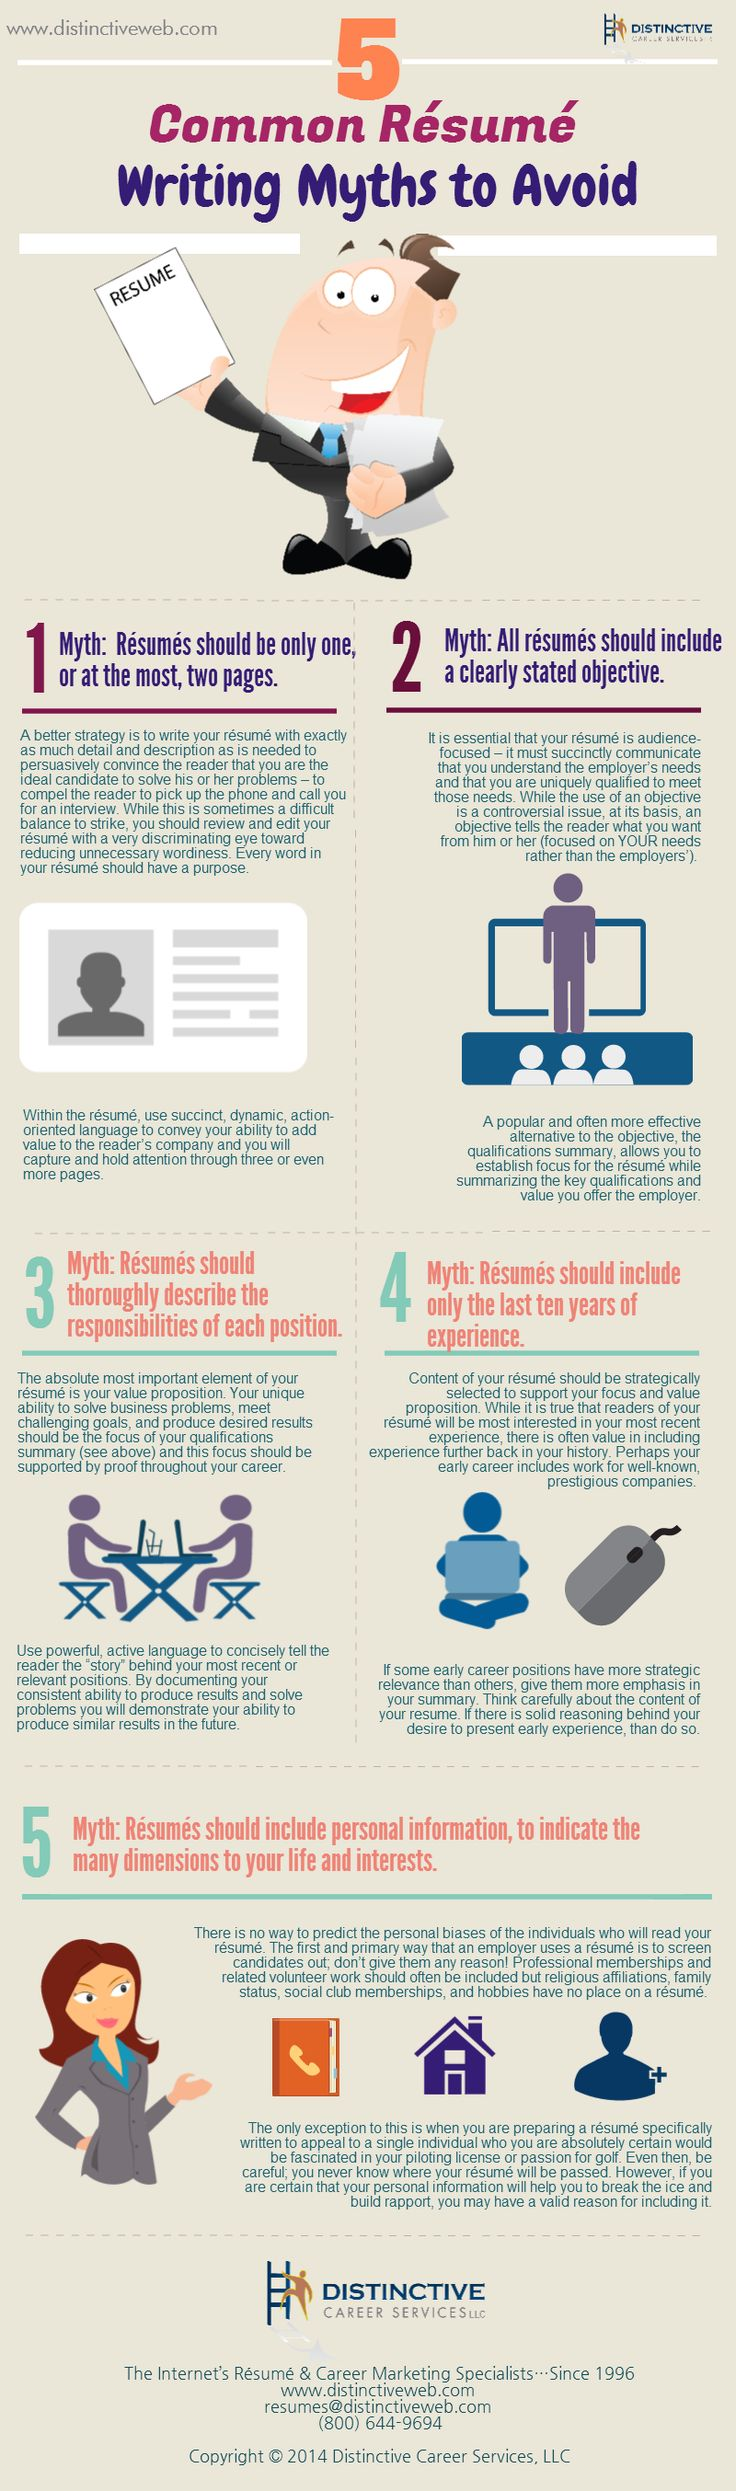 ideas about resume review resume objective an infographic of the five most common resumewriting myths to avoid in writing your